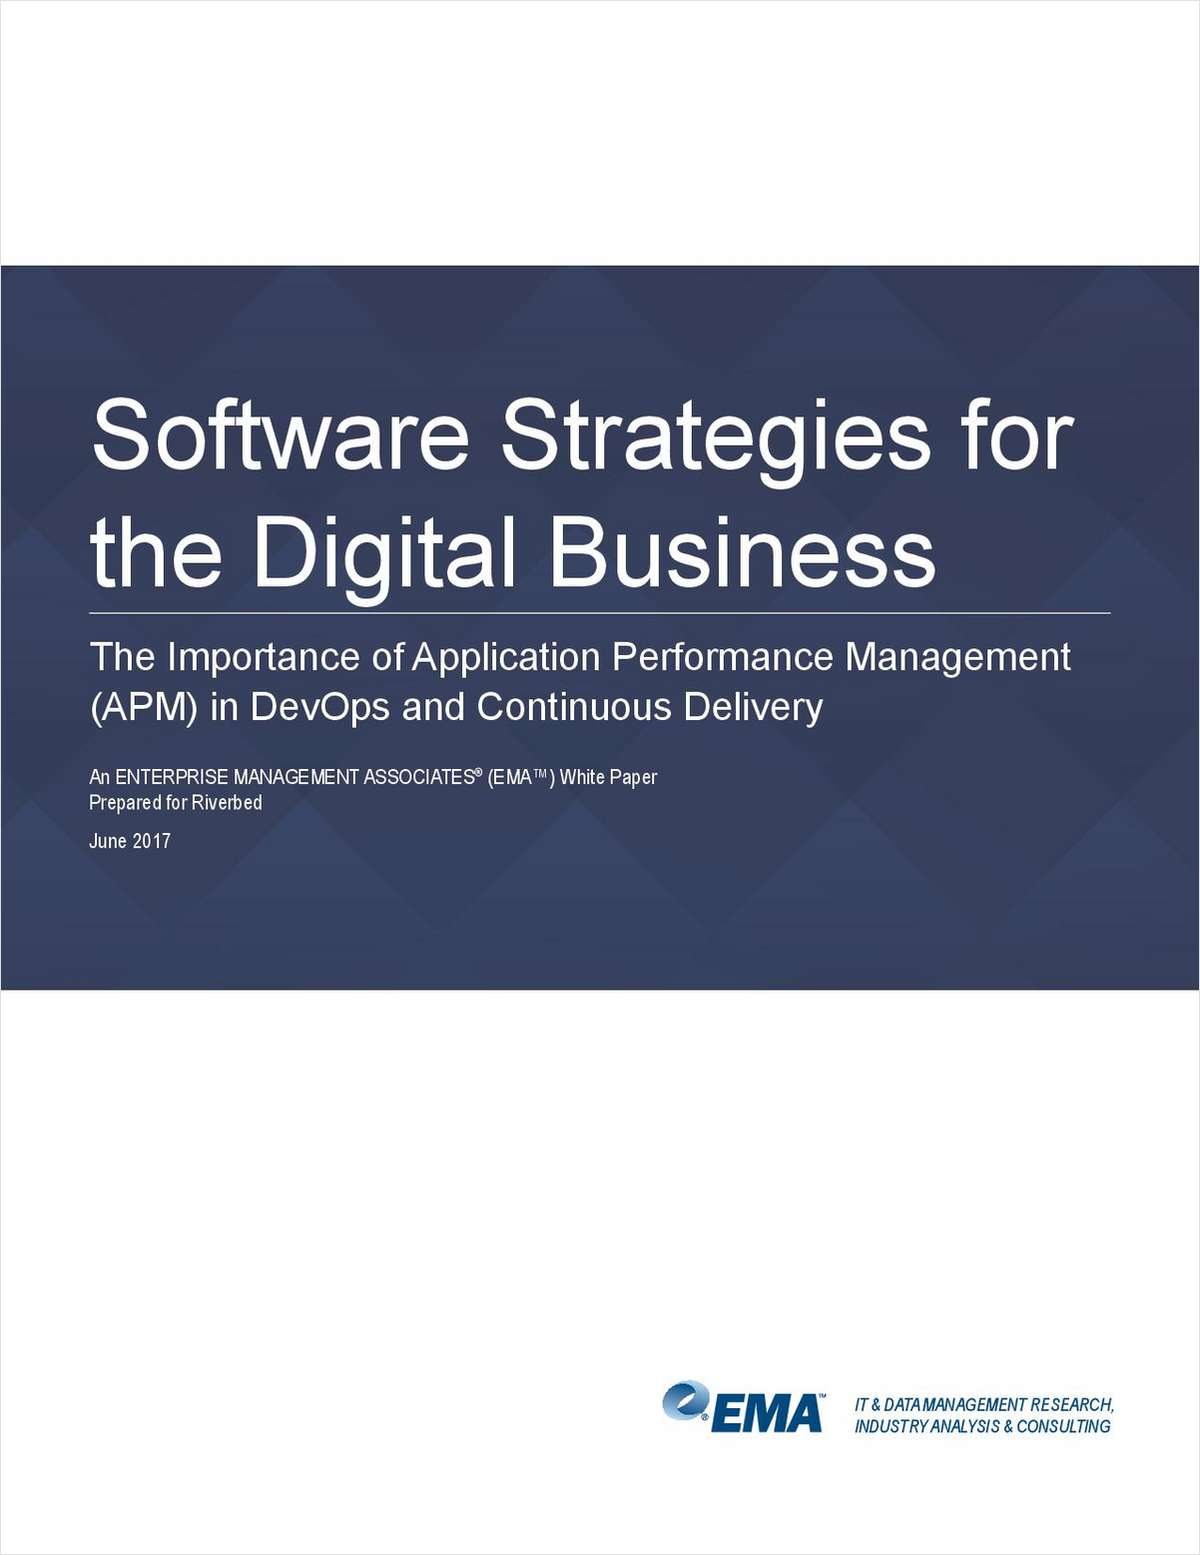 Software Strategies for the Digital Business: The Importance of APM for DevOps and Continuous Delivery